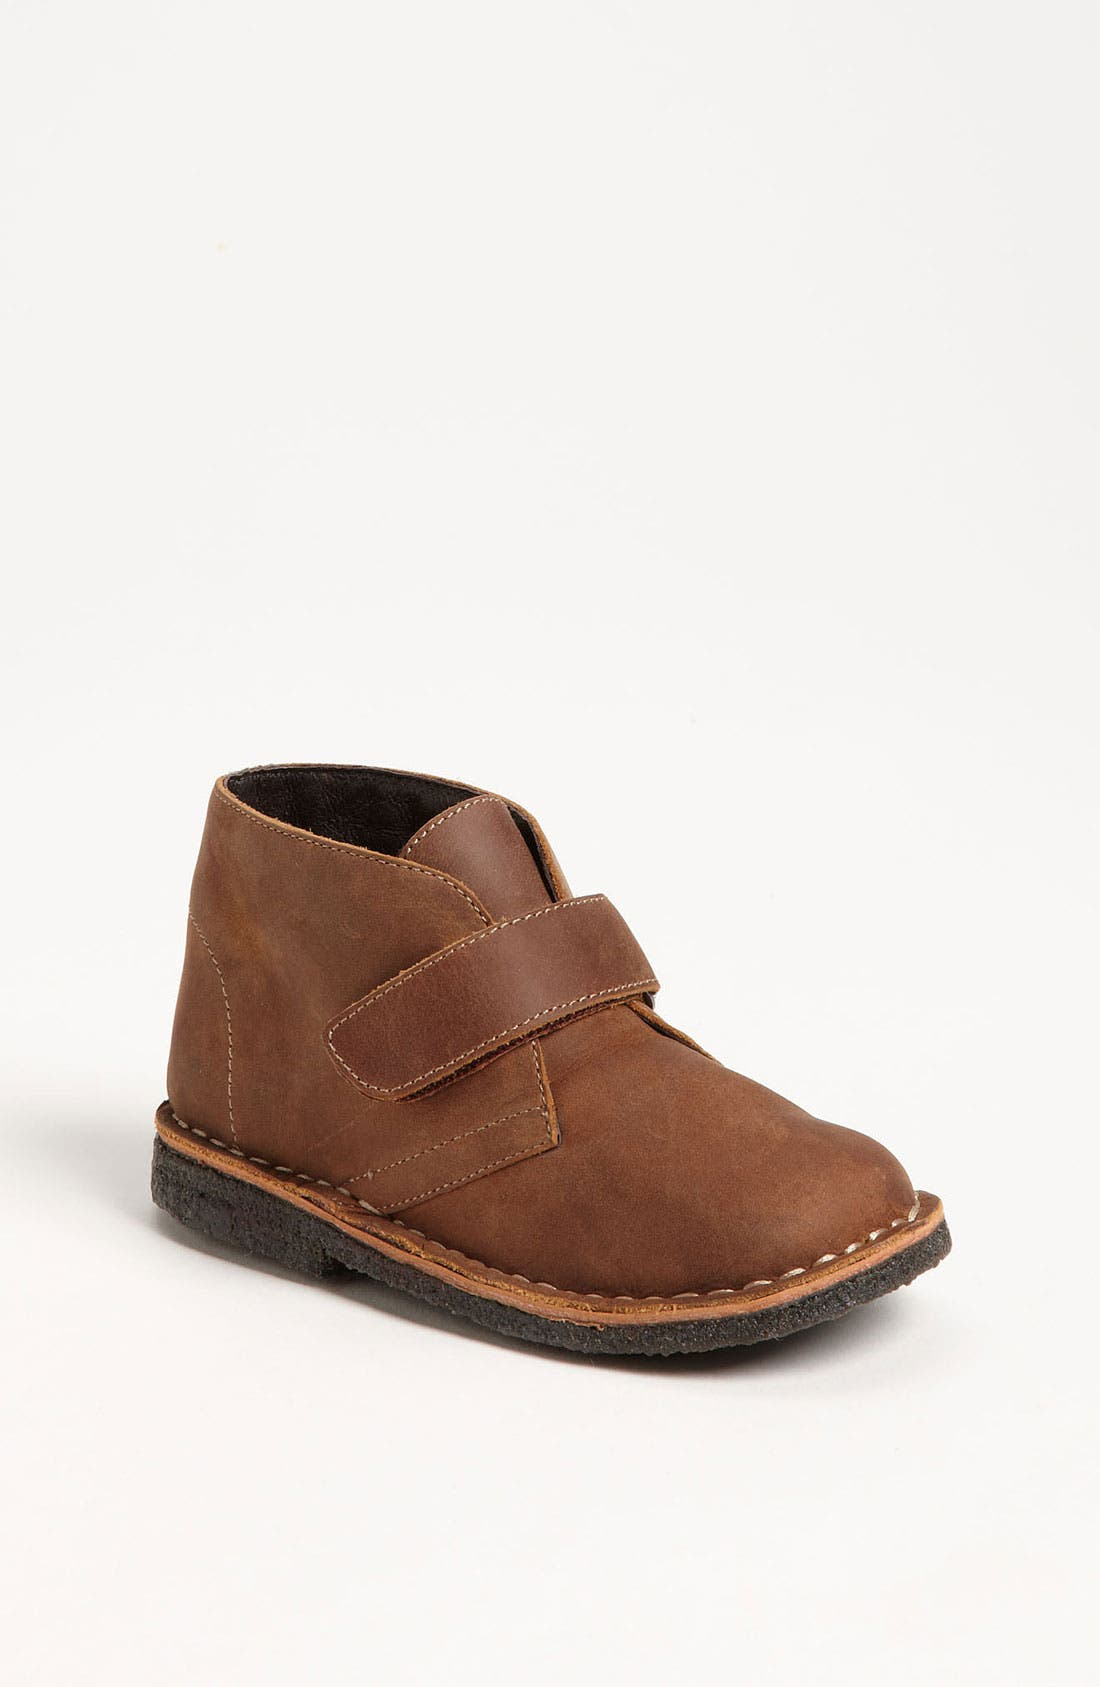 Main Image - Cole Haan 'City' Chukka Boot (Toddler, Little Kid & Big Kid)